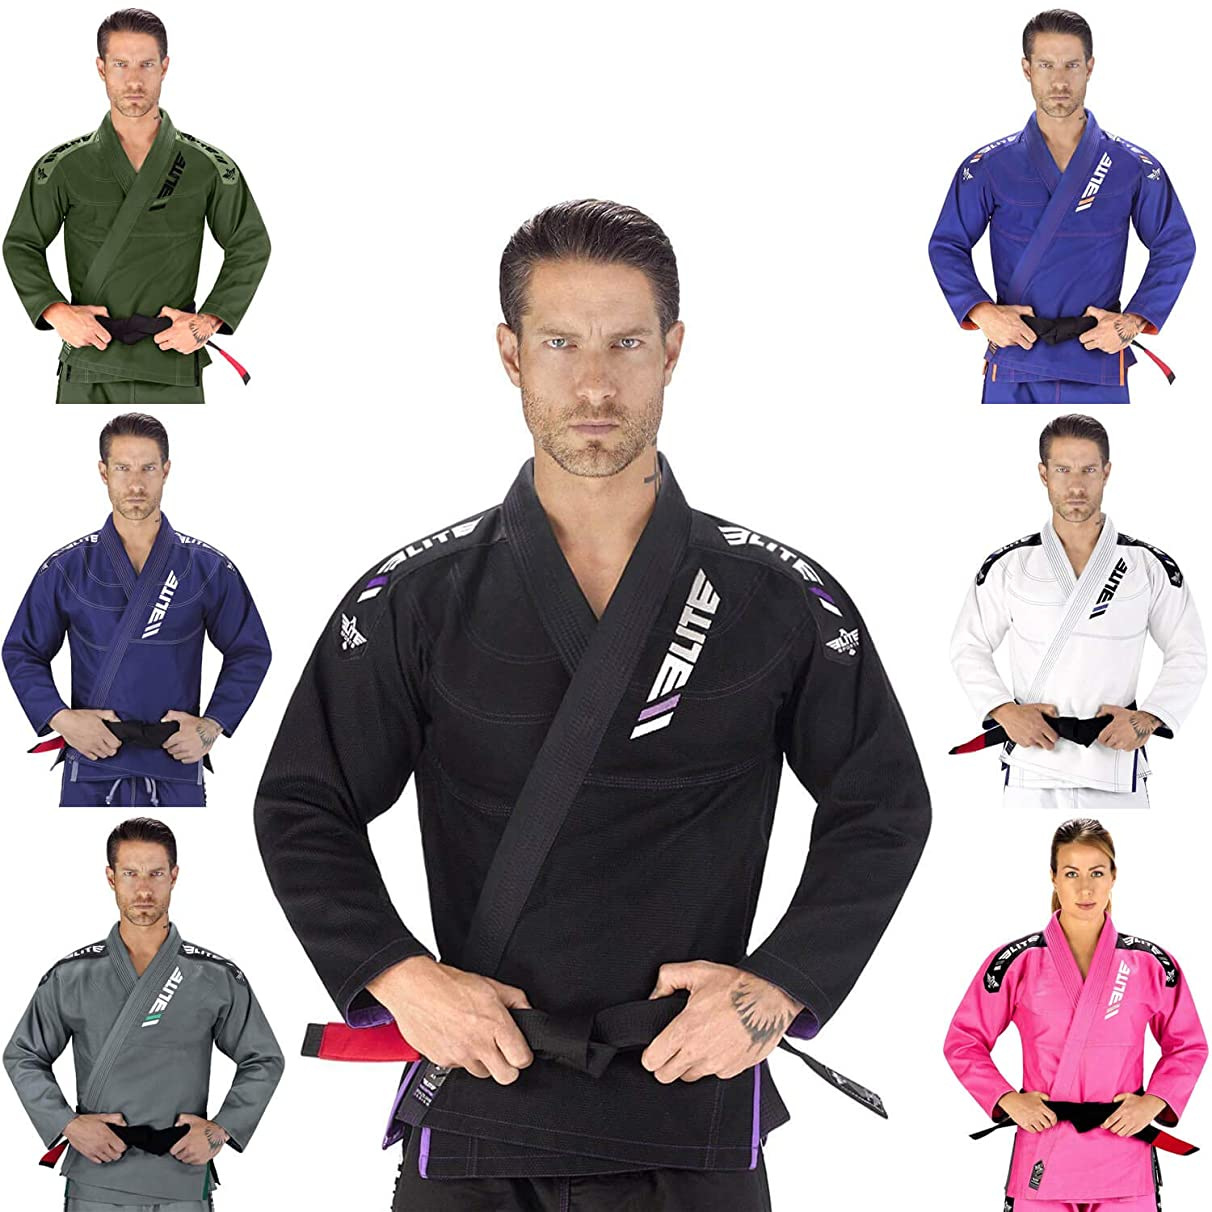 Elite Sports IBJJF Ultra Light BJJ Brazilian Jiu Jitsu Gi W/Preshrunk Fabric & Free Belt